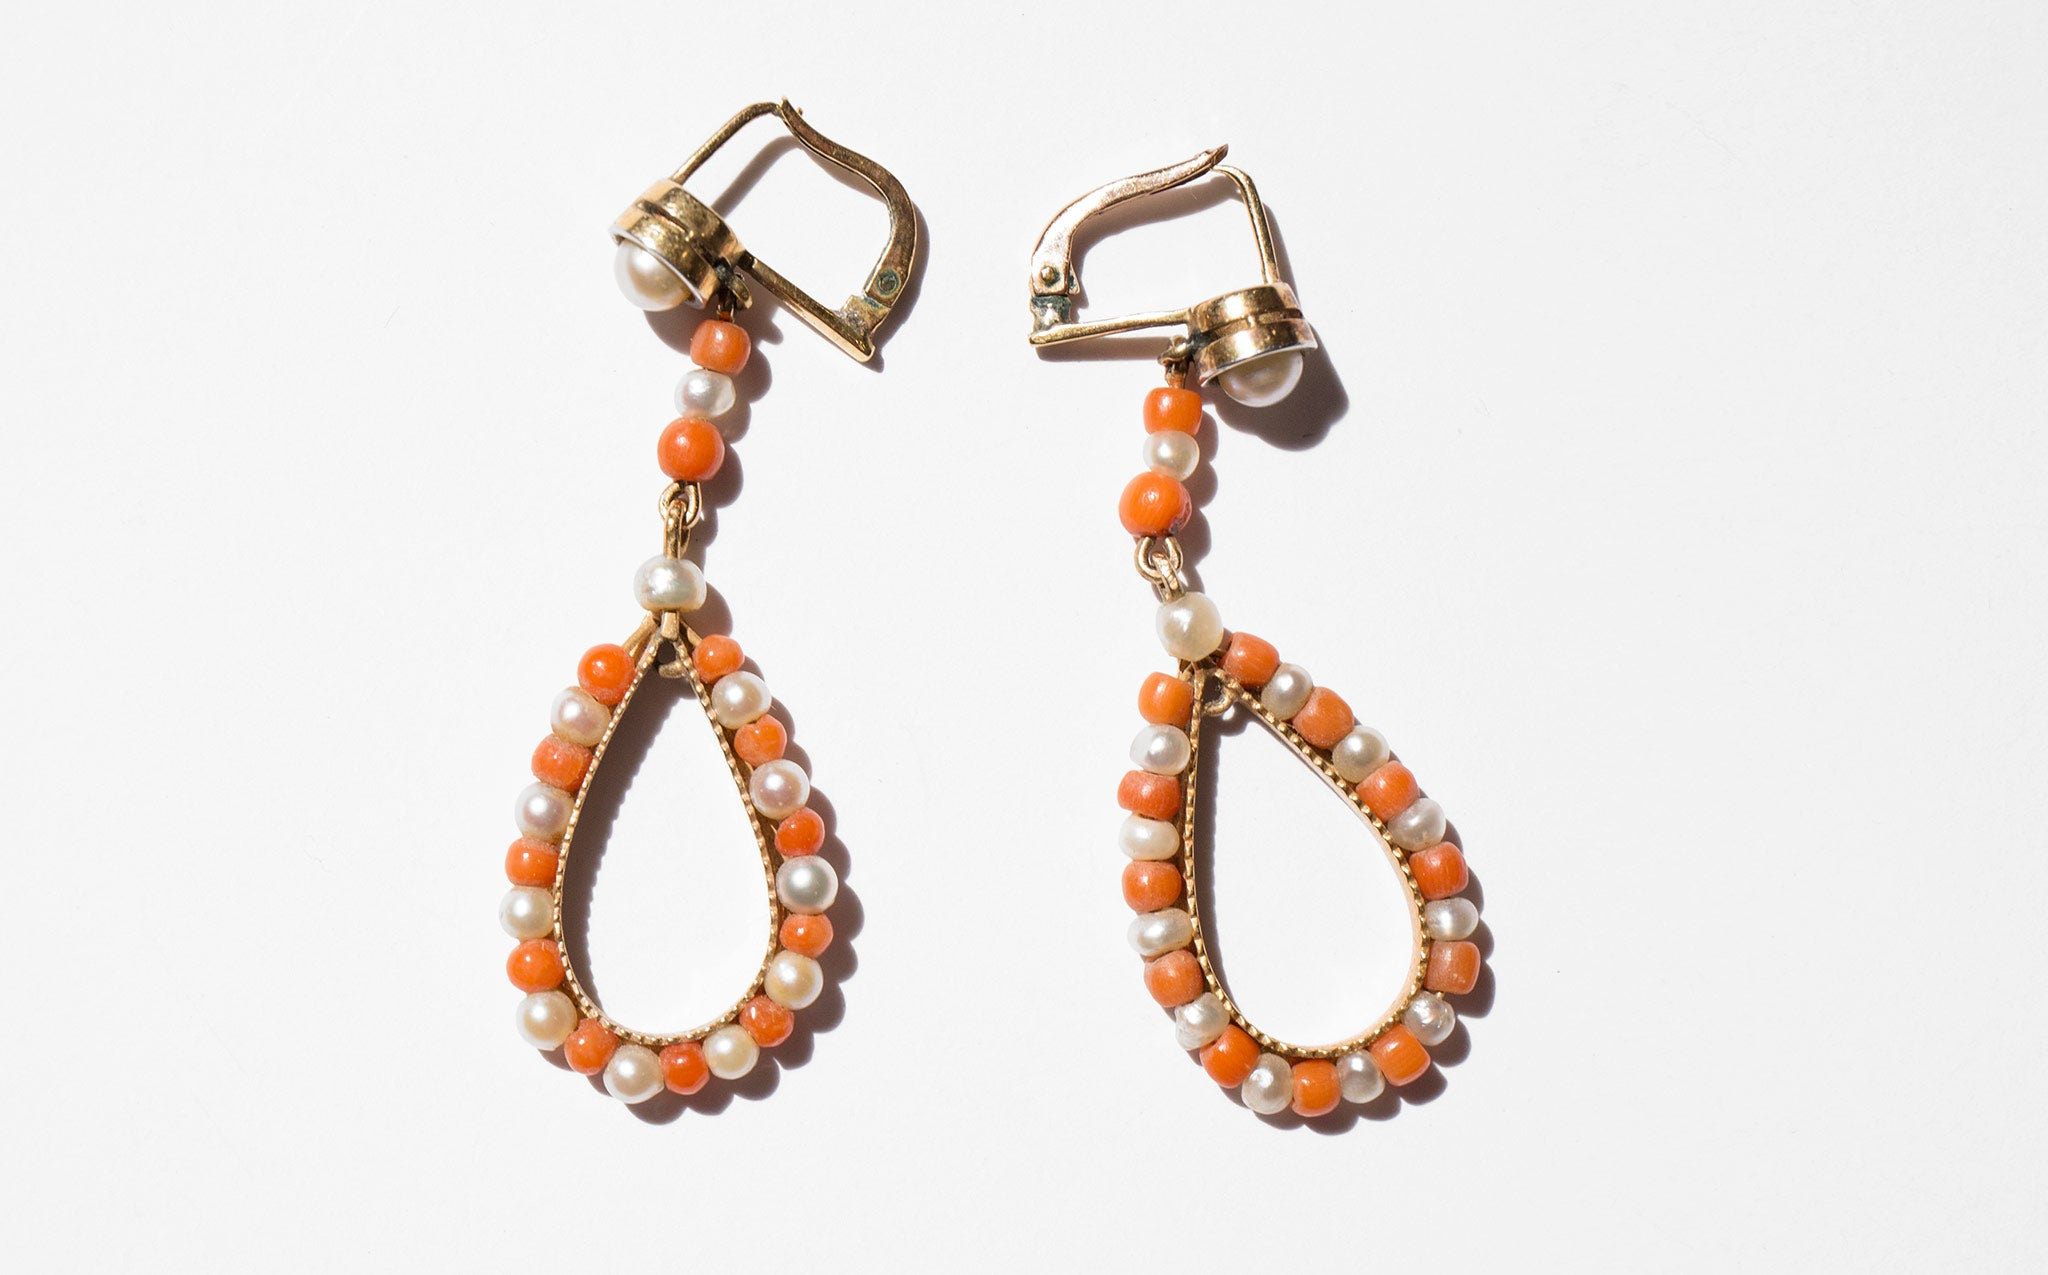 Wanderess Earrings